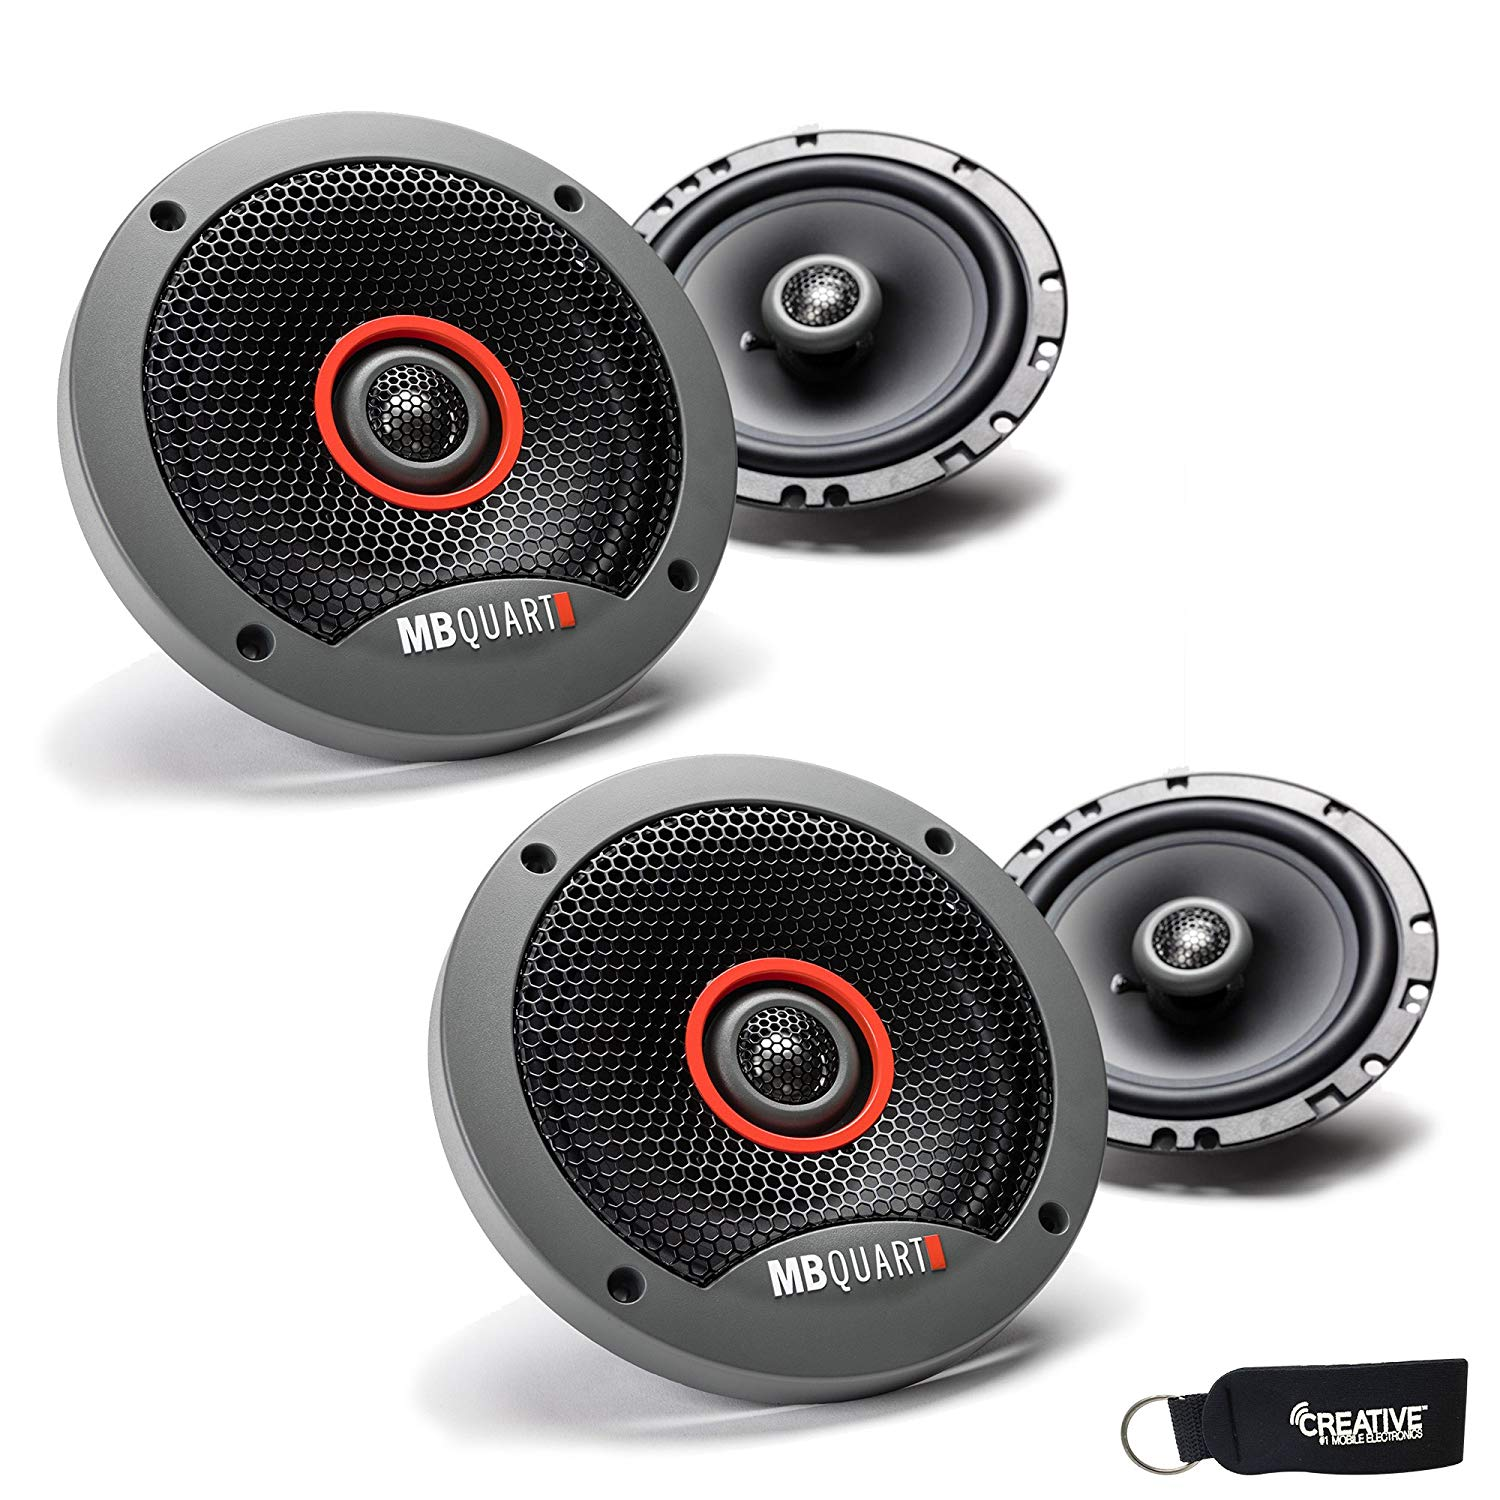 6.5-Inch Set of 2 MB Quart DK1-116 Discus 2-Way Car Coaxial Speaker System with 0.75-Inch Aluminum Dome Tweeter on Silk Surround